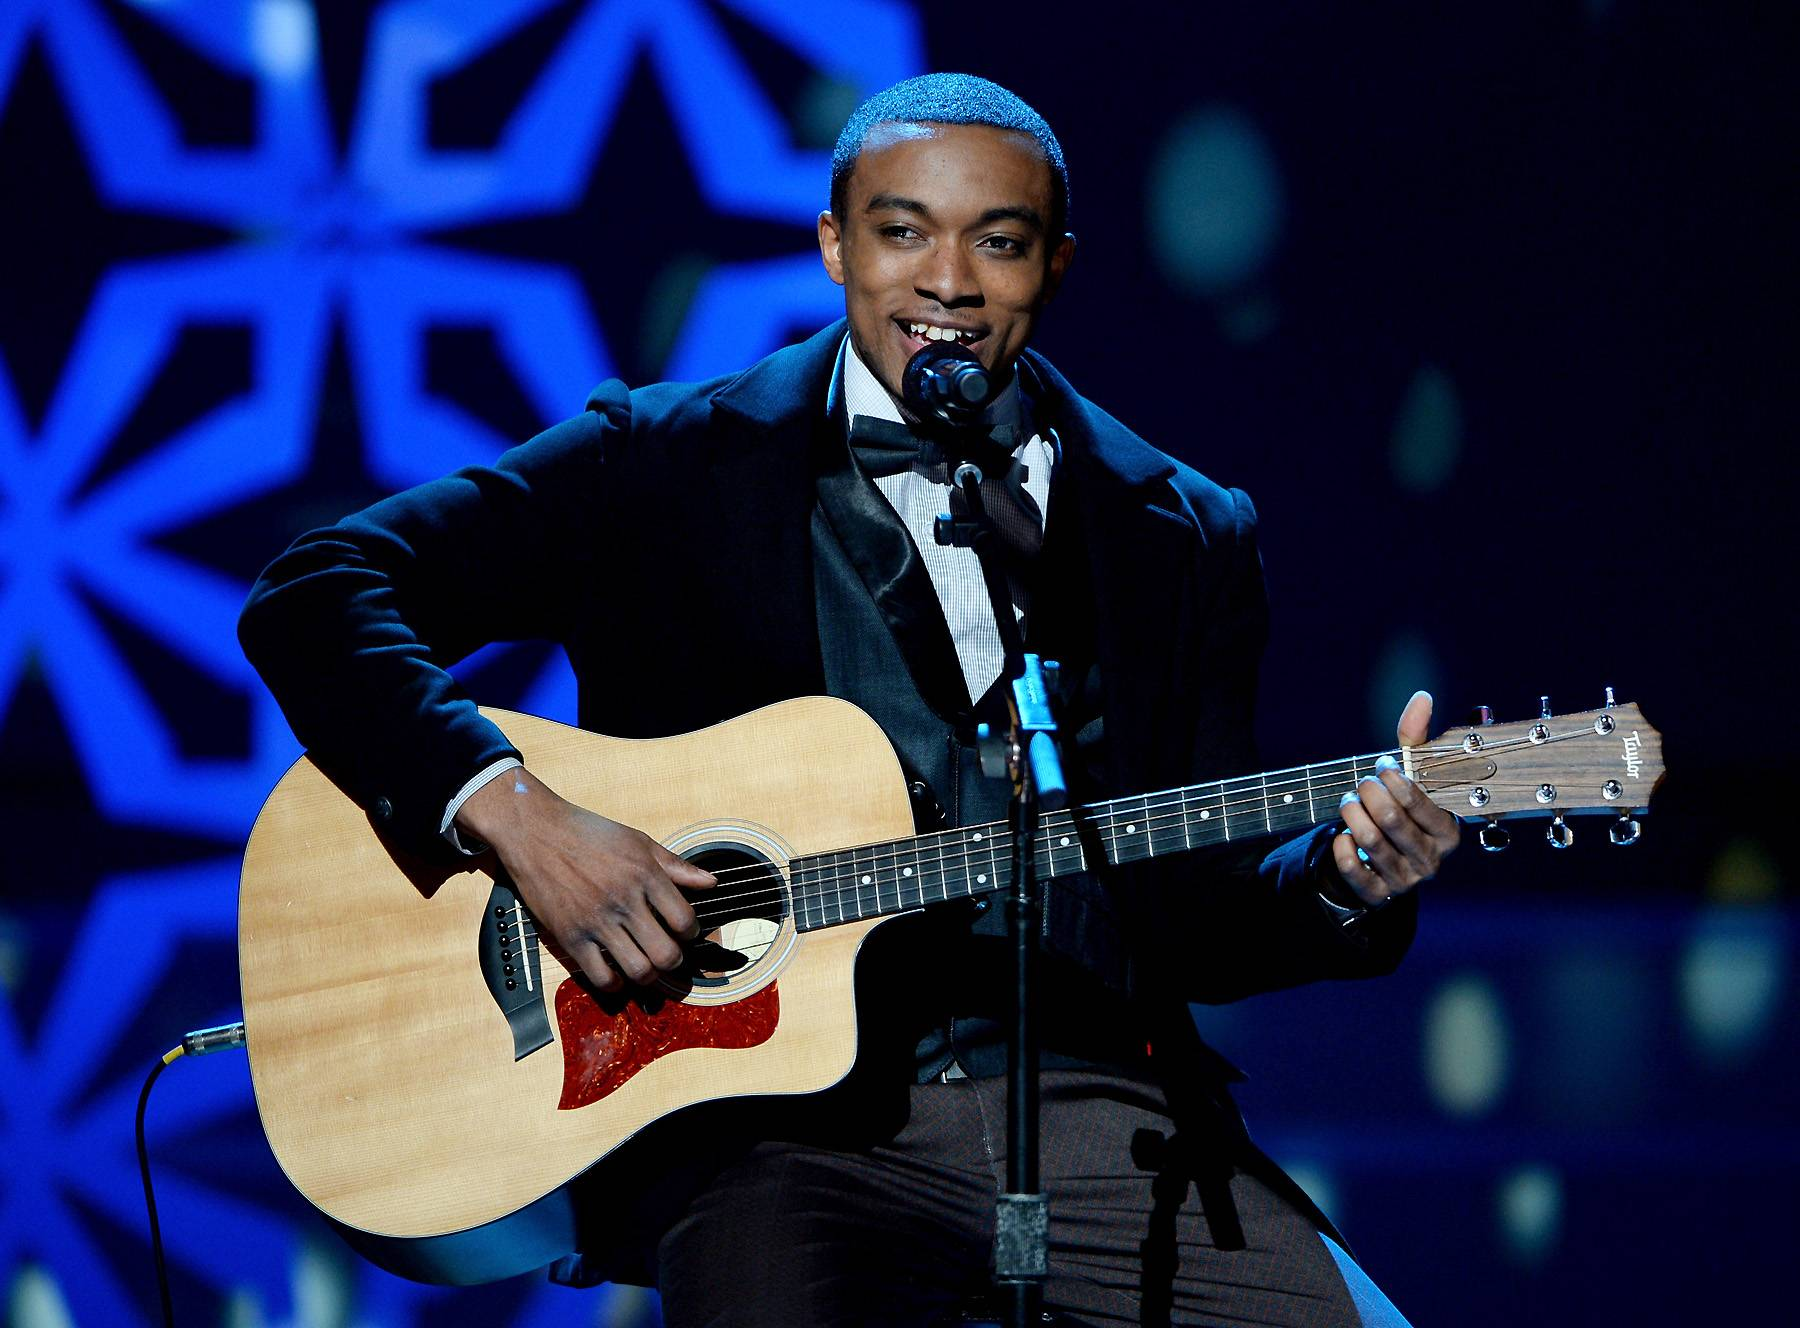 The Breakout Star - A beaming Jonathan McReynolds performs alongside collaborator India.Arie.(Photo: Jason Kempin/Getty Images for BET)